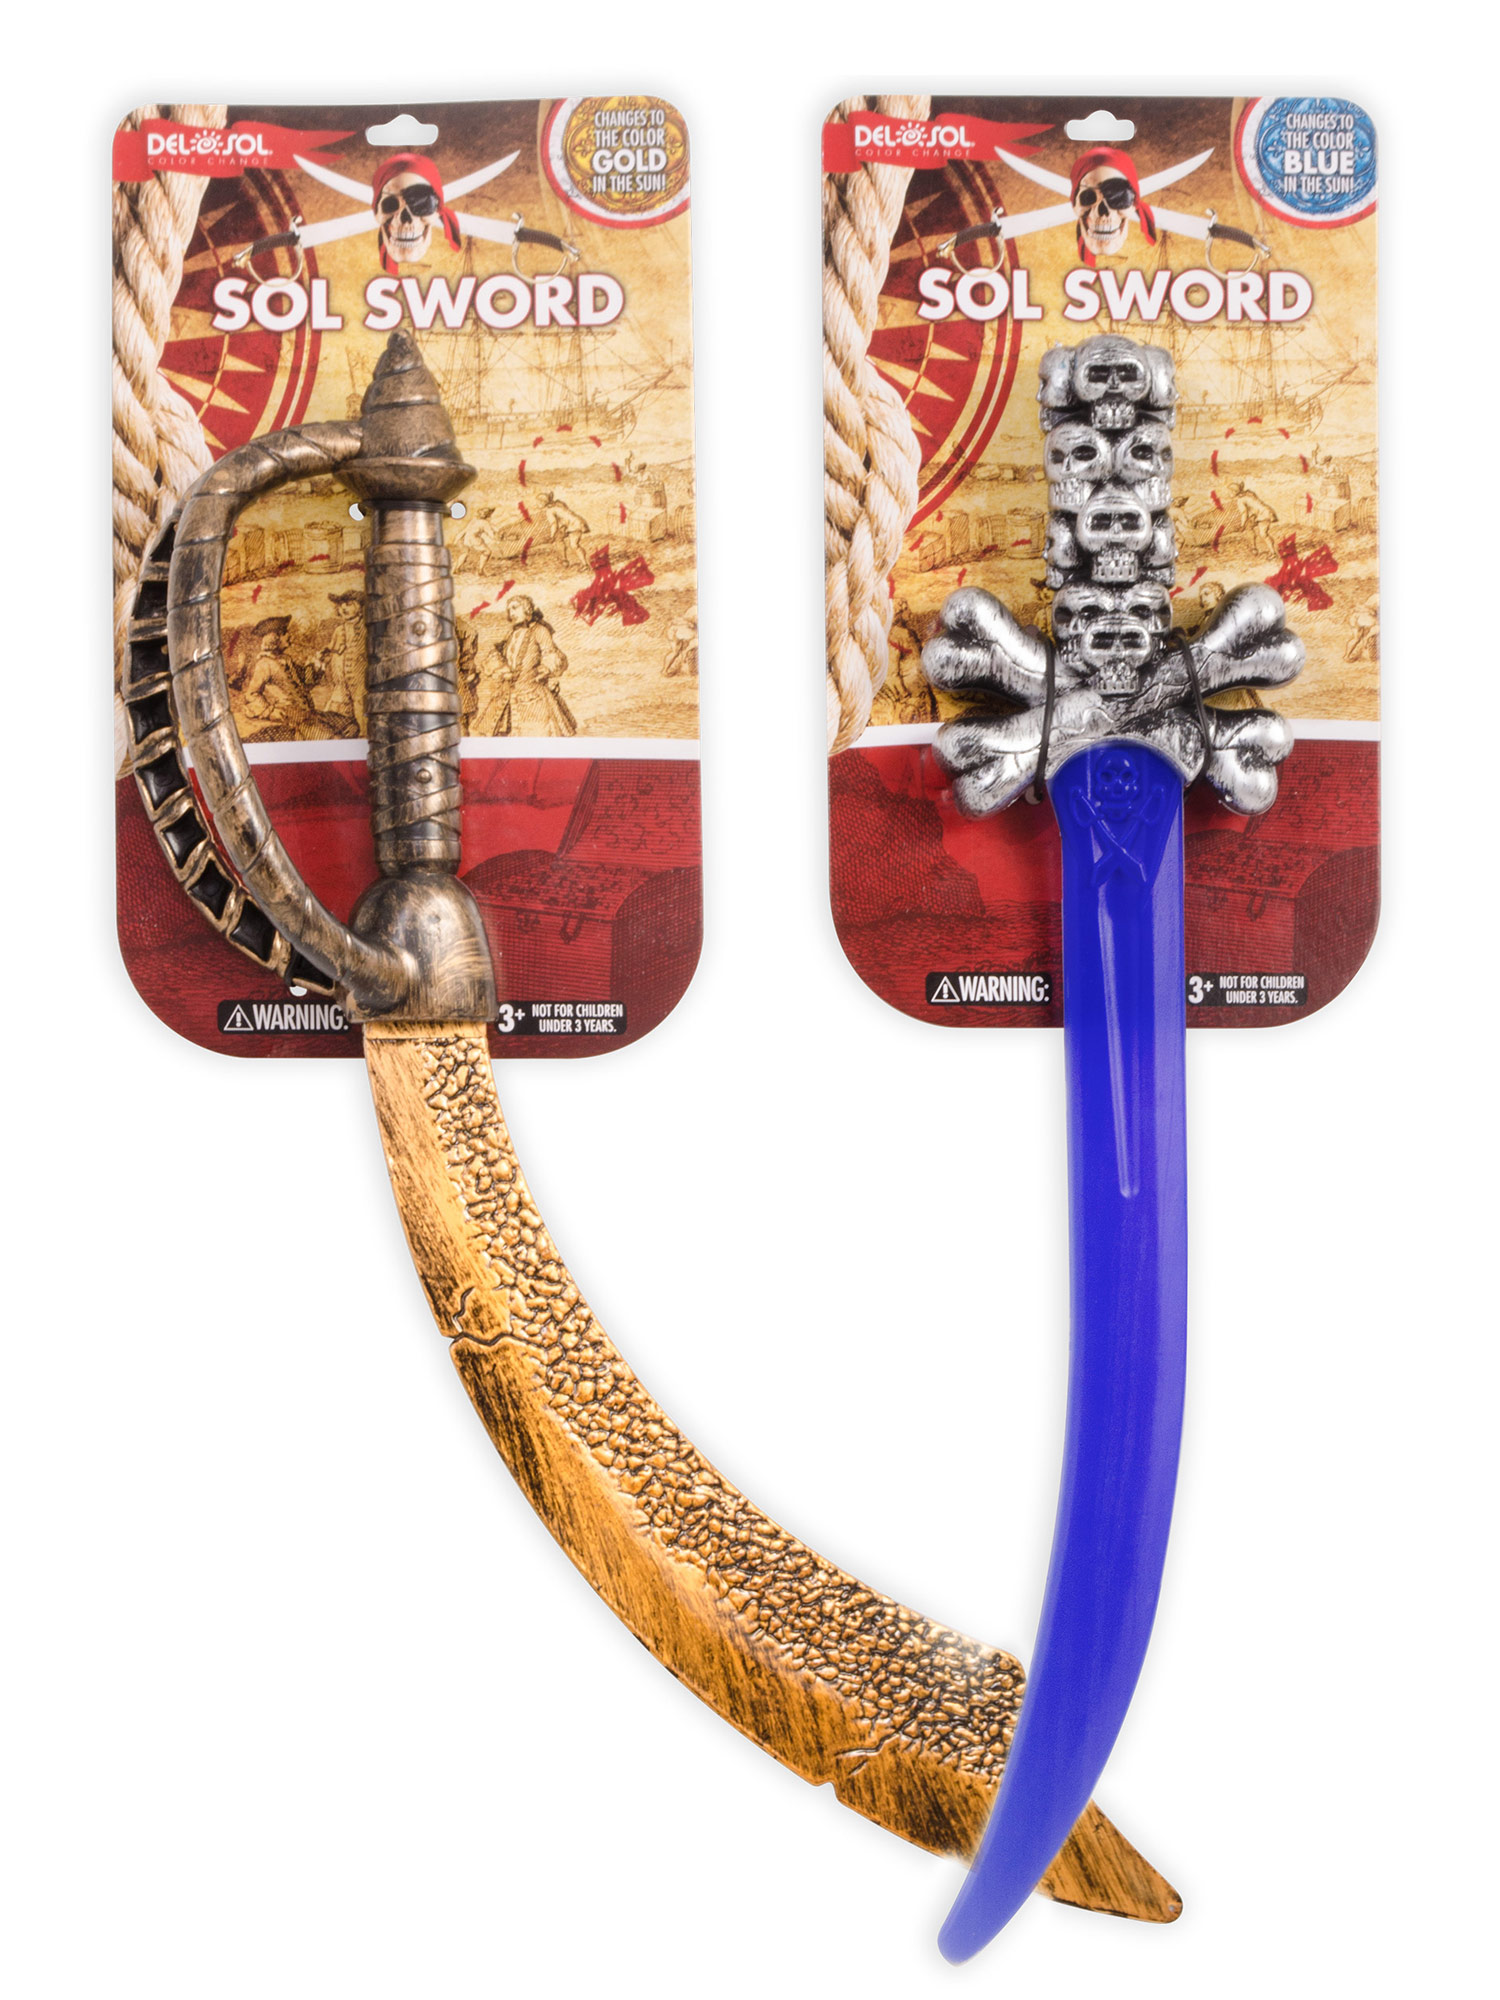 Designed 2 packaging variations for 2 models of Del Sol color-changing swords.